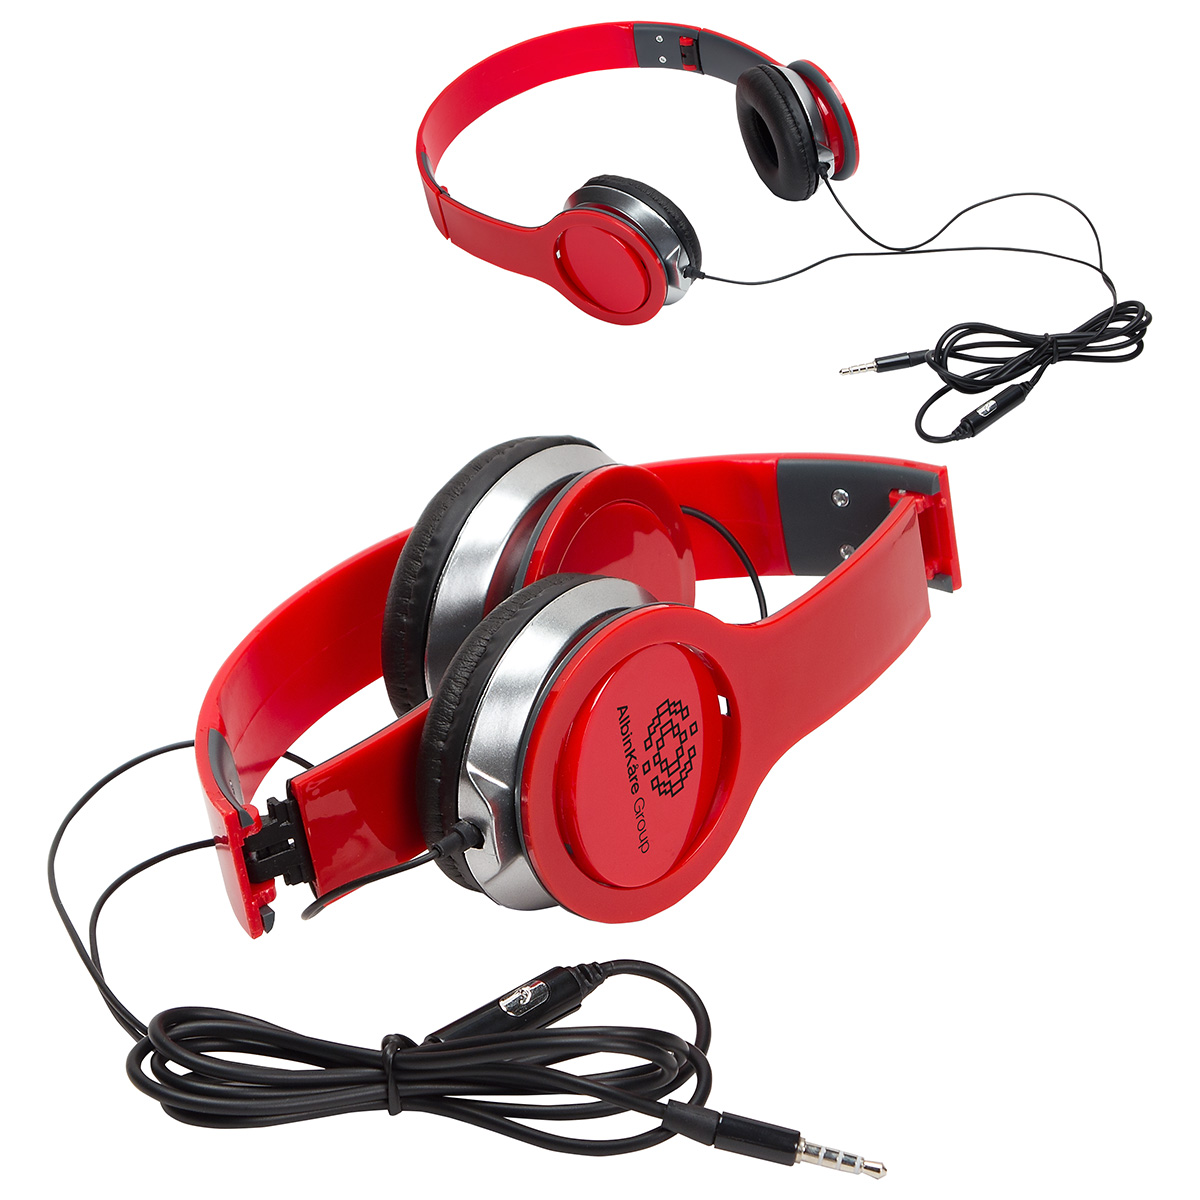 Moji Foldable Headphones with Mic, WTV-MF16 - 1 Colour Imprint